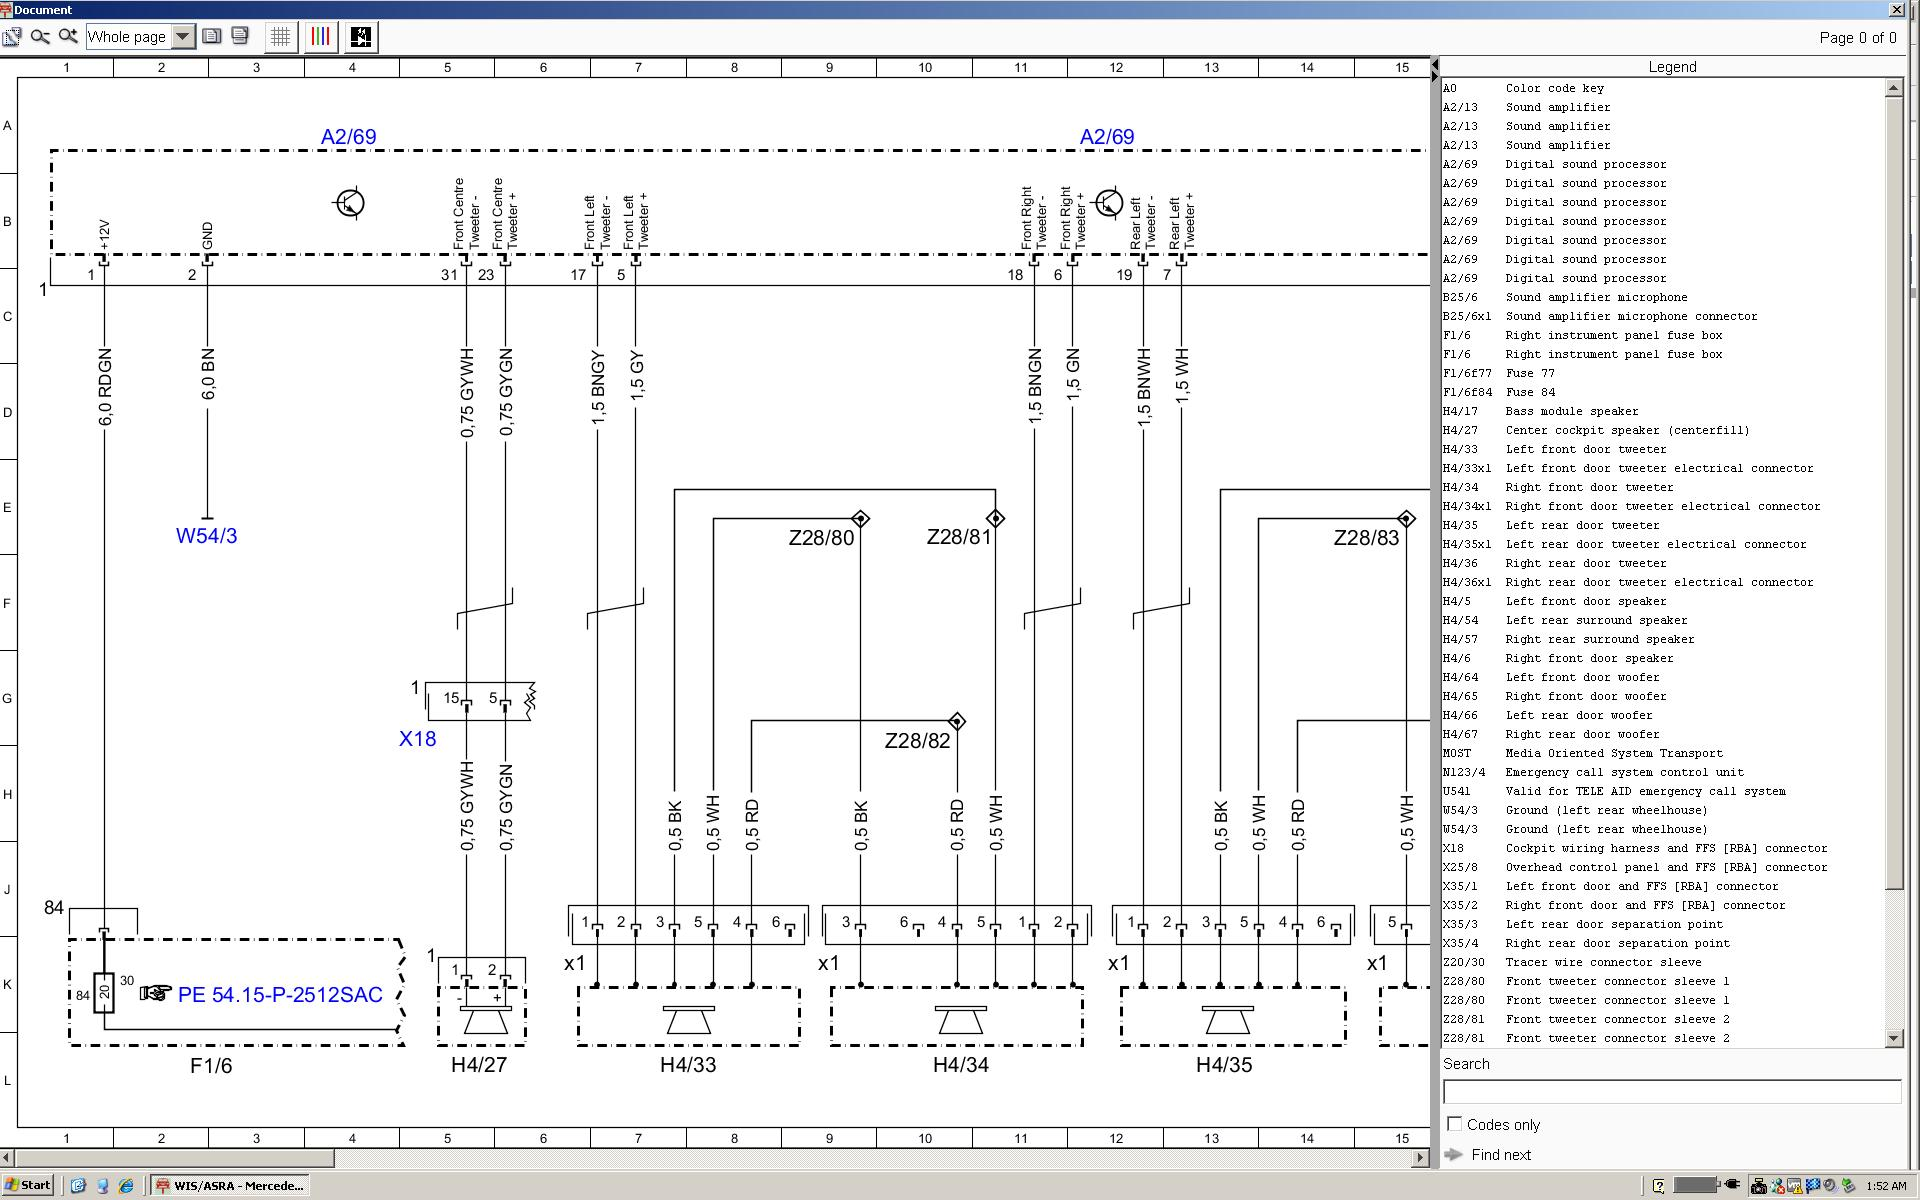 hight resolution of 2008 c300 fuse diagram wiring diagram expert 2003 mercedes c320 fuse diagram 2008 c300 fuse diagram